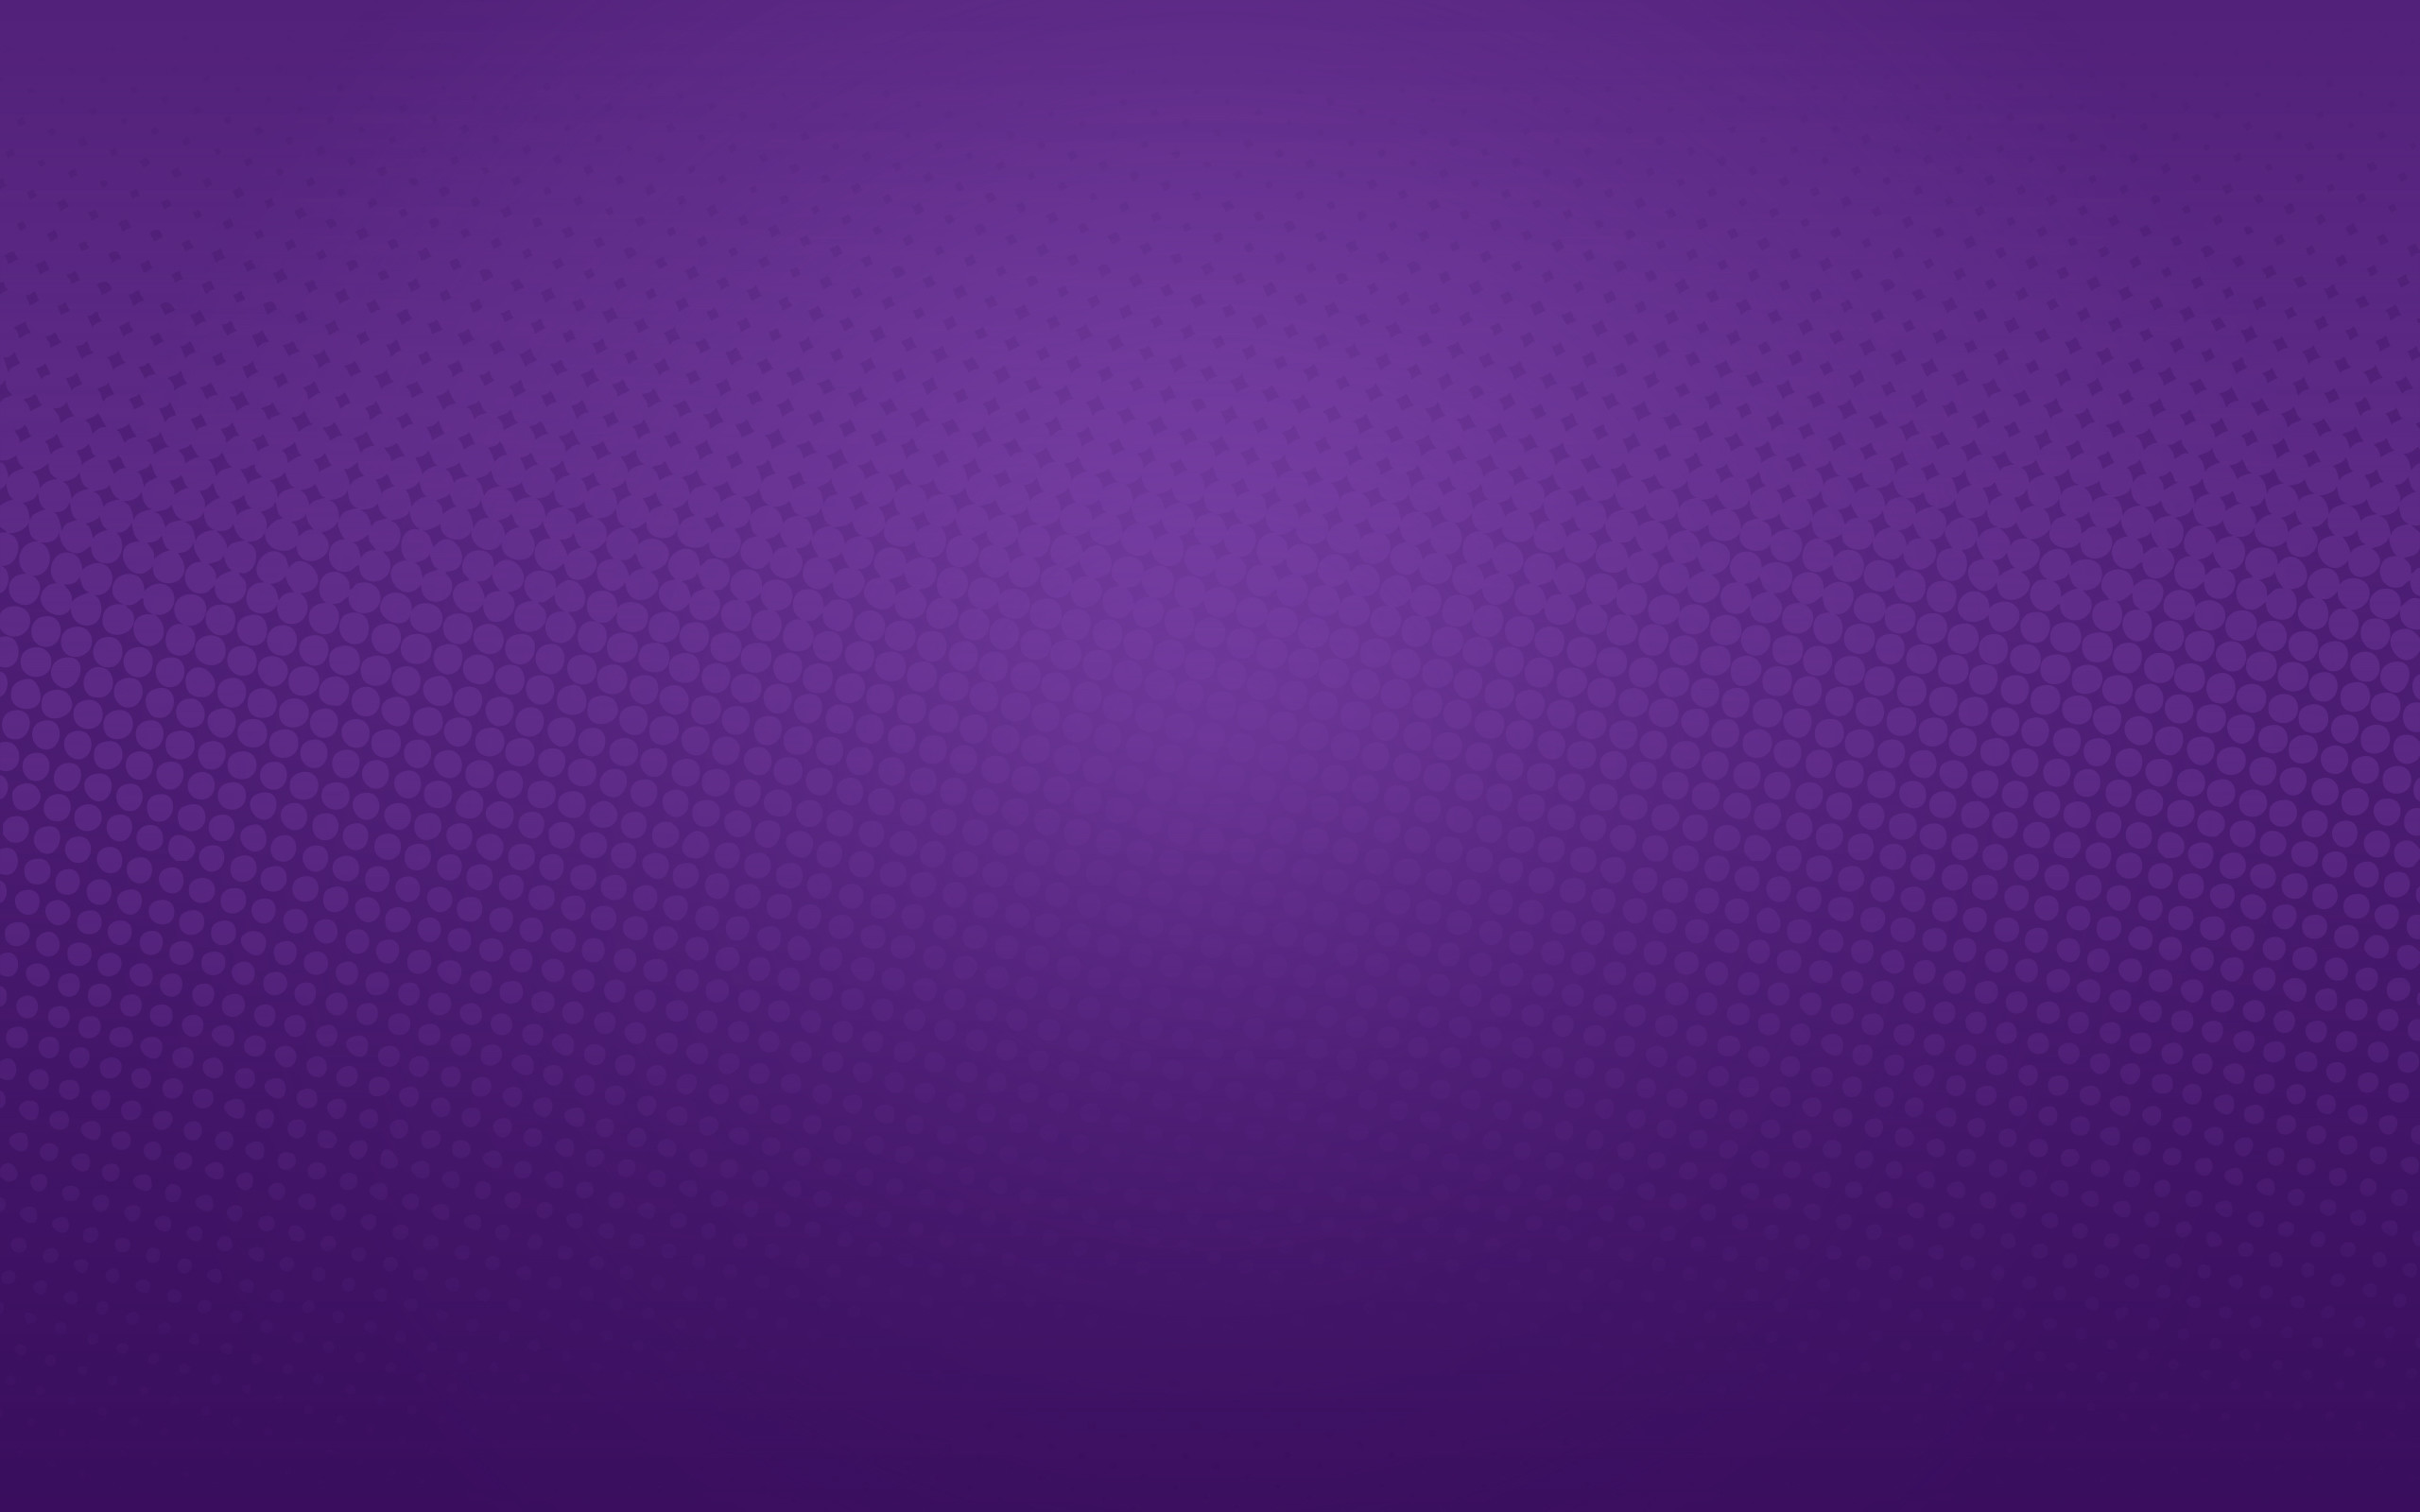 2560x1600 Purple. | Purple wallpaper 5